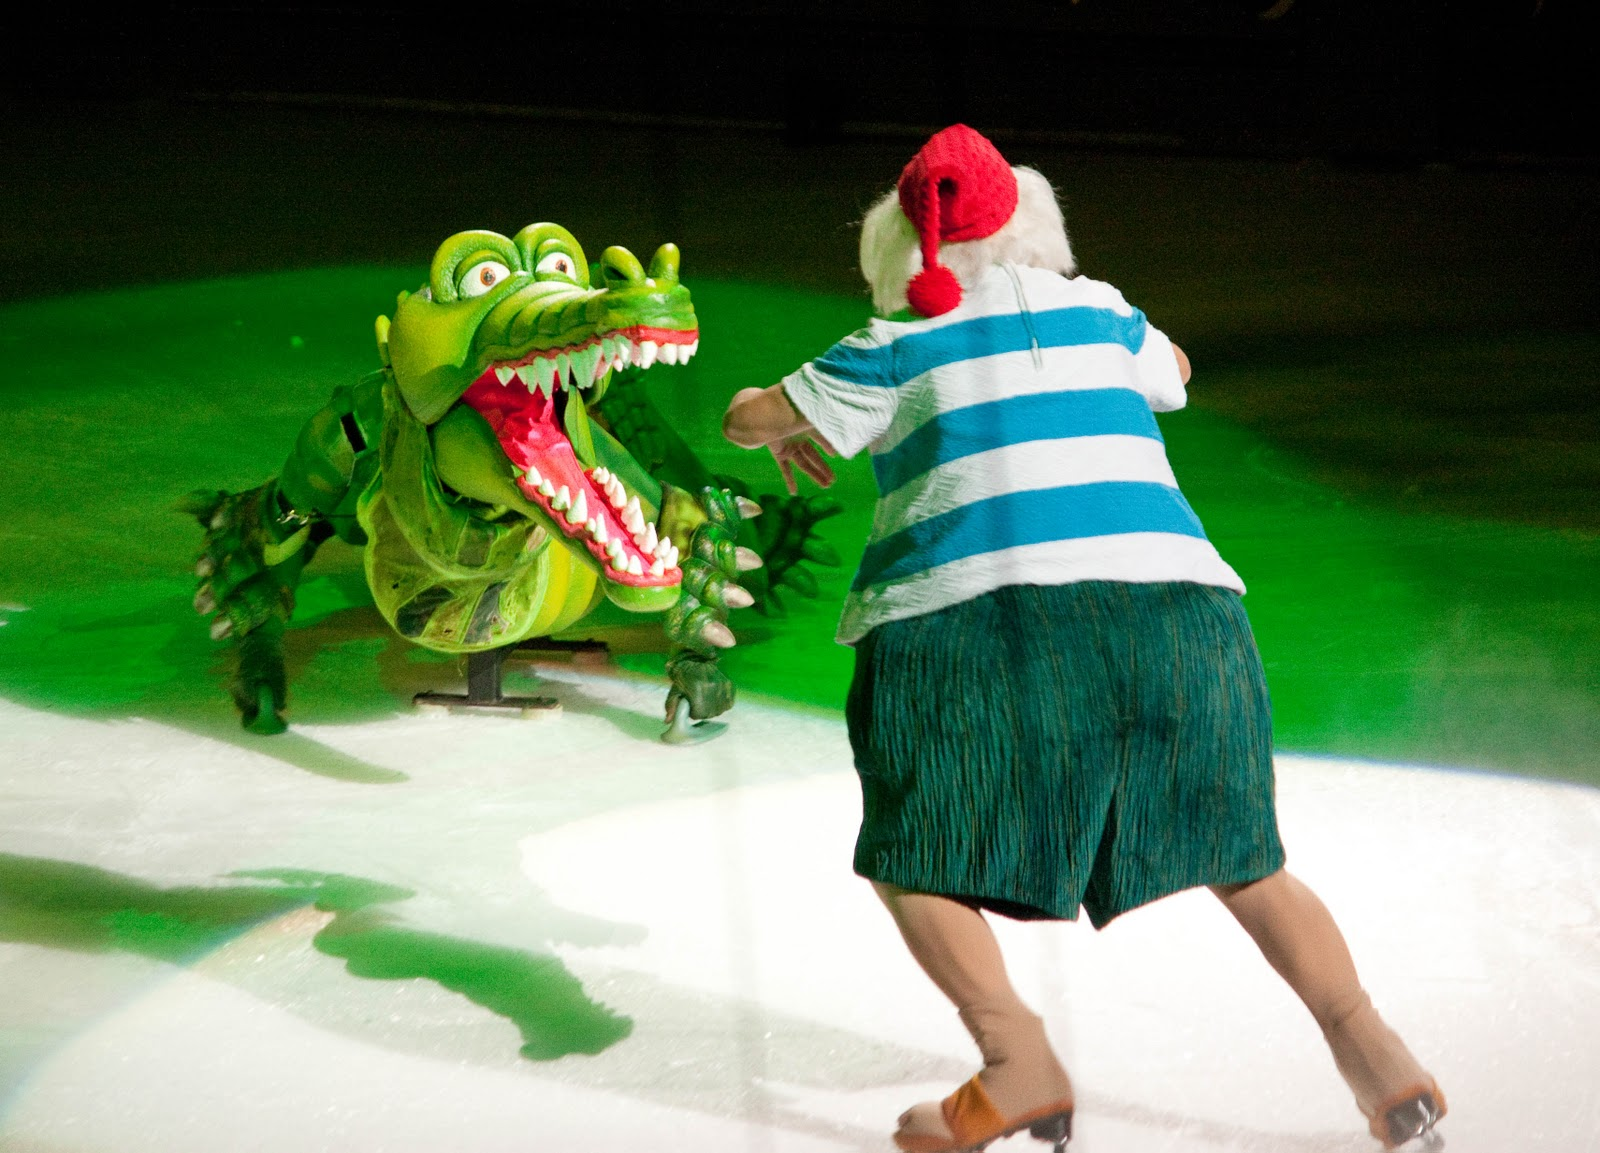 http://static1.wikia.nocookie.net/__cb20120111201902/disney/images/5/50/Crocodile-on-Disney-Ice.jpg